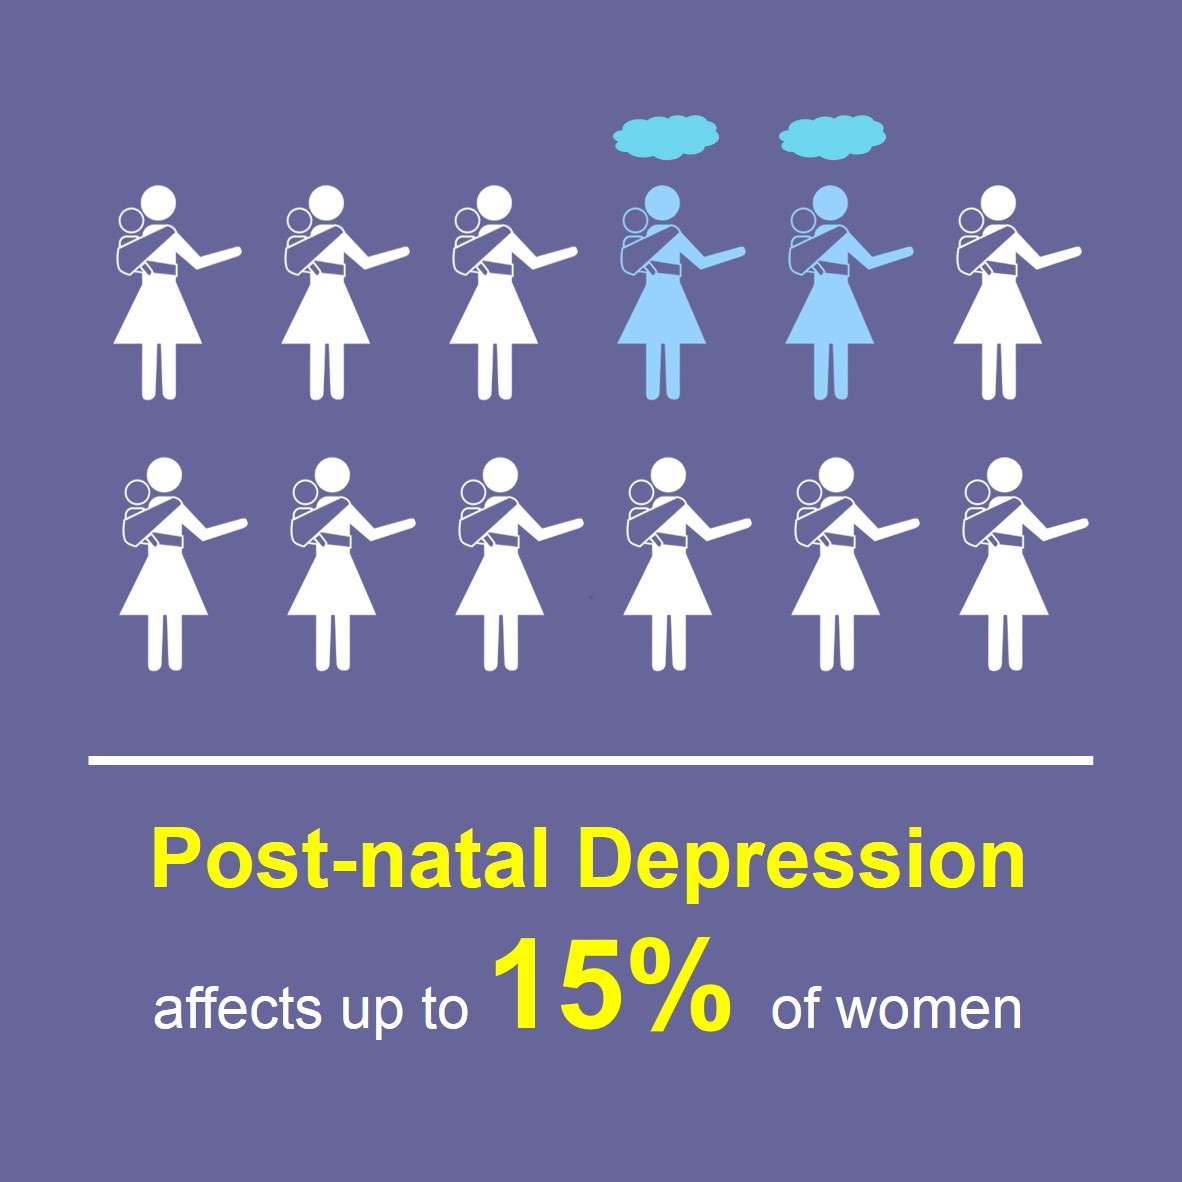 post natal depression Maternity blues), postpartum (or postnatal) depression and puerperal (postpartum or postnatal) psychosis each of which differs in its prevalence, clinical presentation, and management maternal mental health.